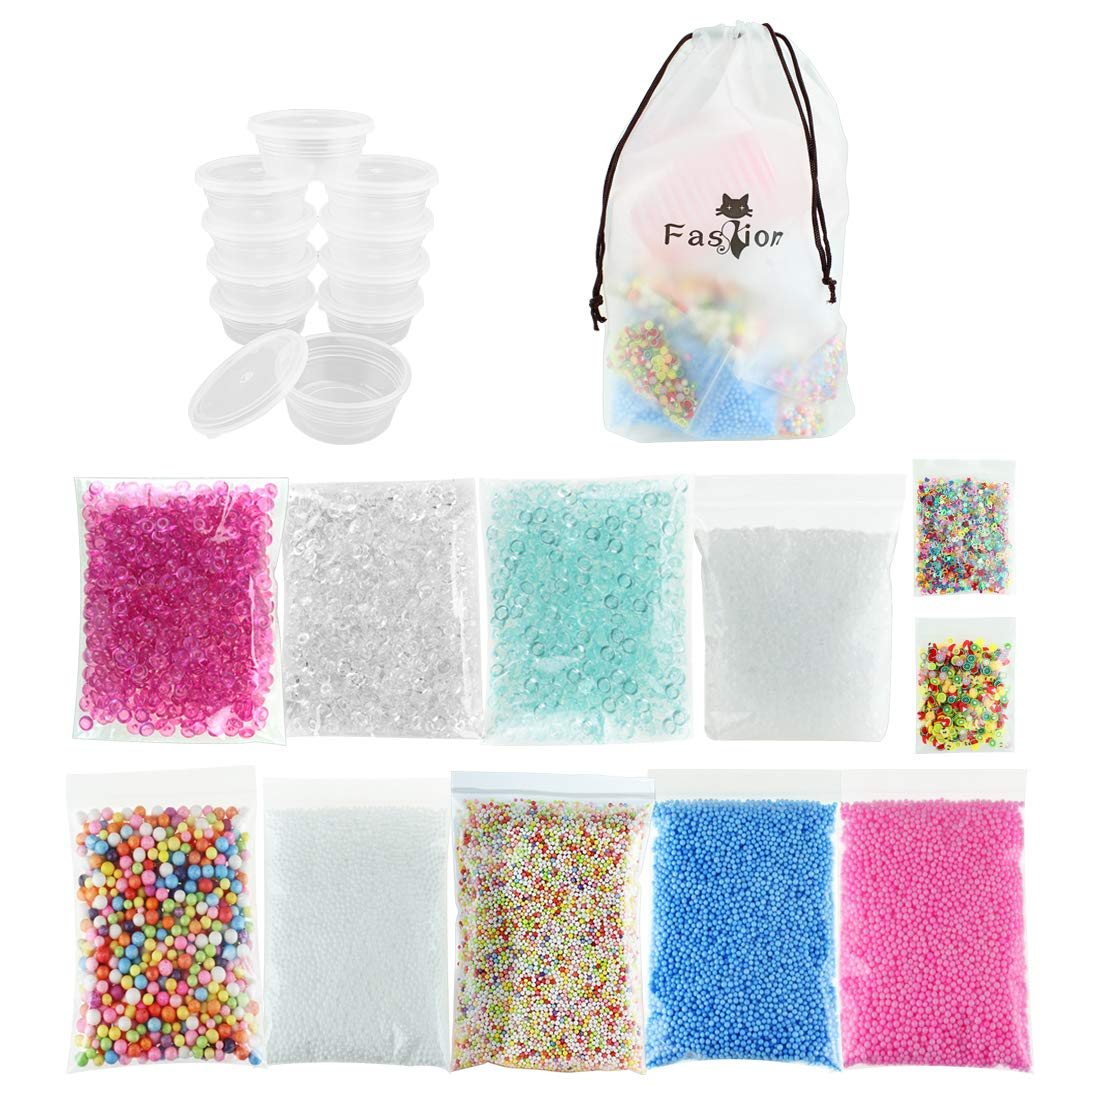 19 Pack Slime Supplies - 10pcs Storage Containers for 20g Slime, Fishbowl Beads Fish Bowl Filler 5.3oz, Colorful Styromfoam Foam Balls 13000pcs, Slushie Beads 3.5oz Bonus Fruit Splice, Glitter Sequins JINSEY Slime Kit-19